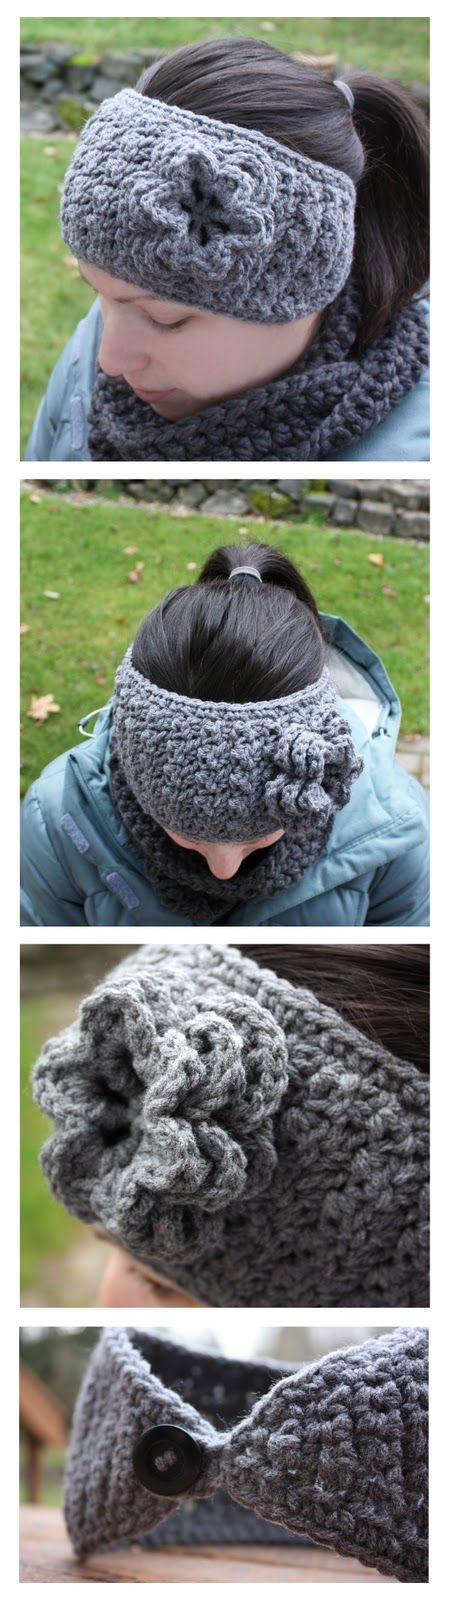 Crochet Winter Headband with Flower - I have been looking for this pattern! Soooo excited!